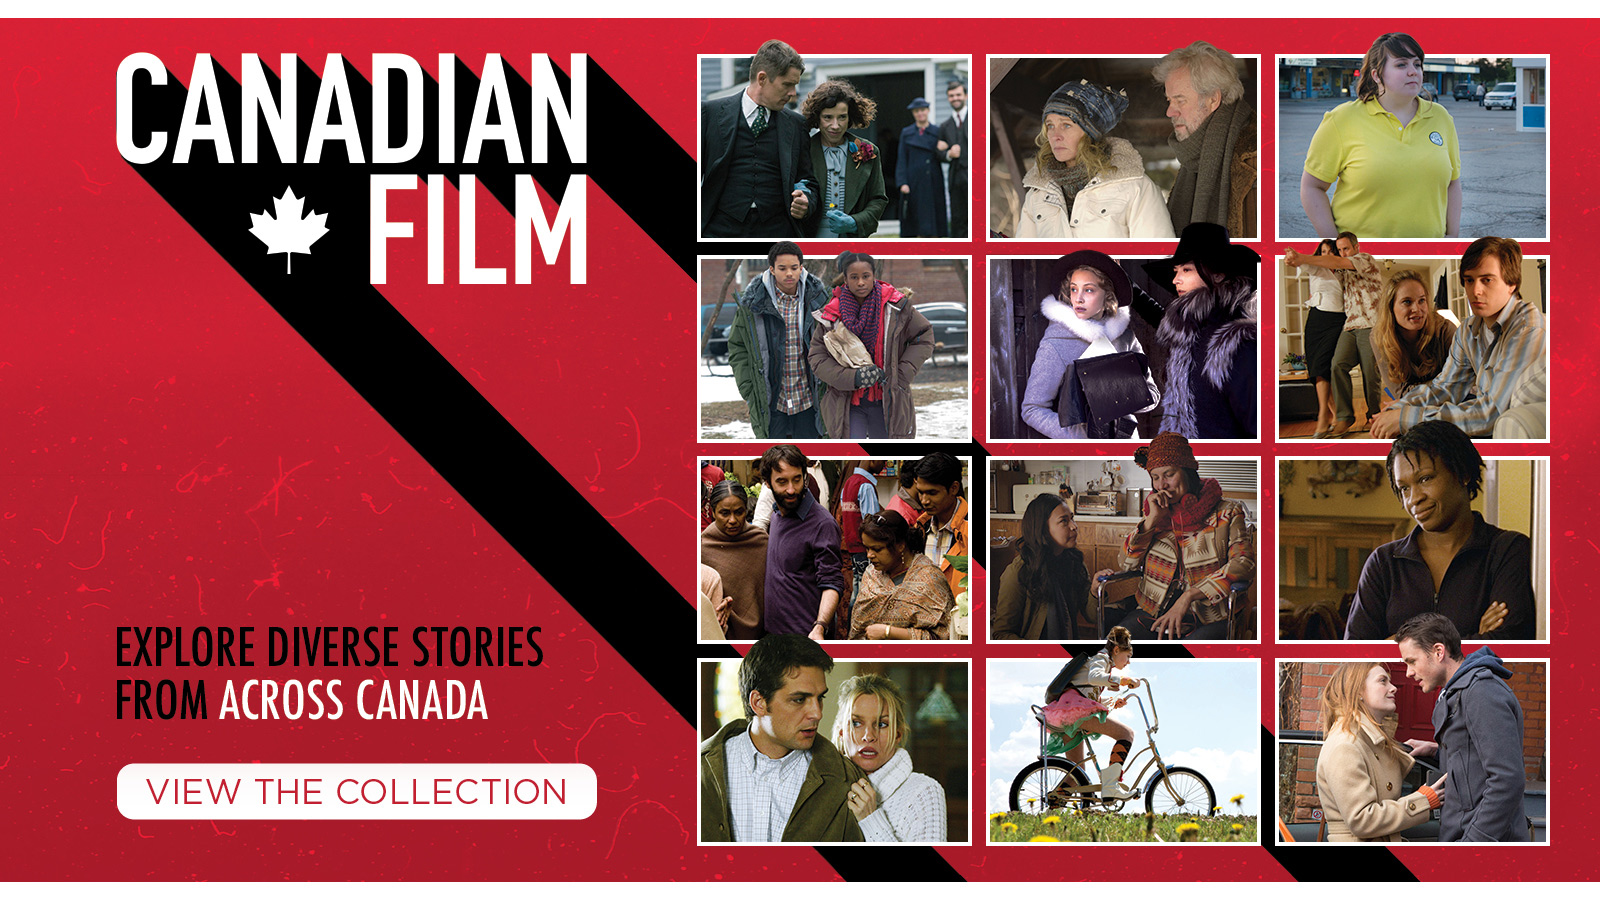 Canadian Film: Explore diverse stories from across Canada [LEARN MORE